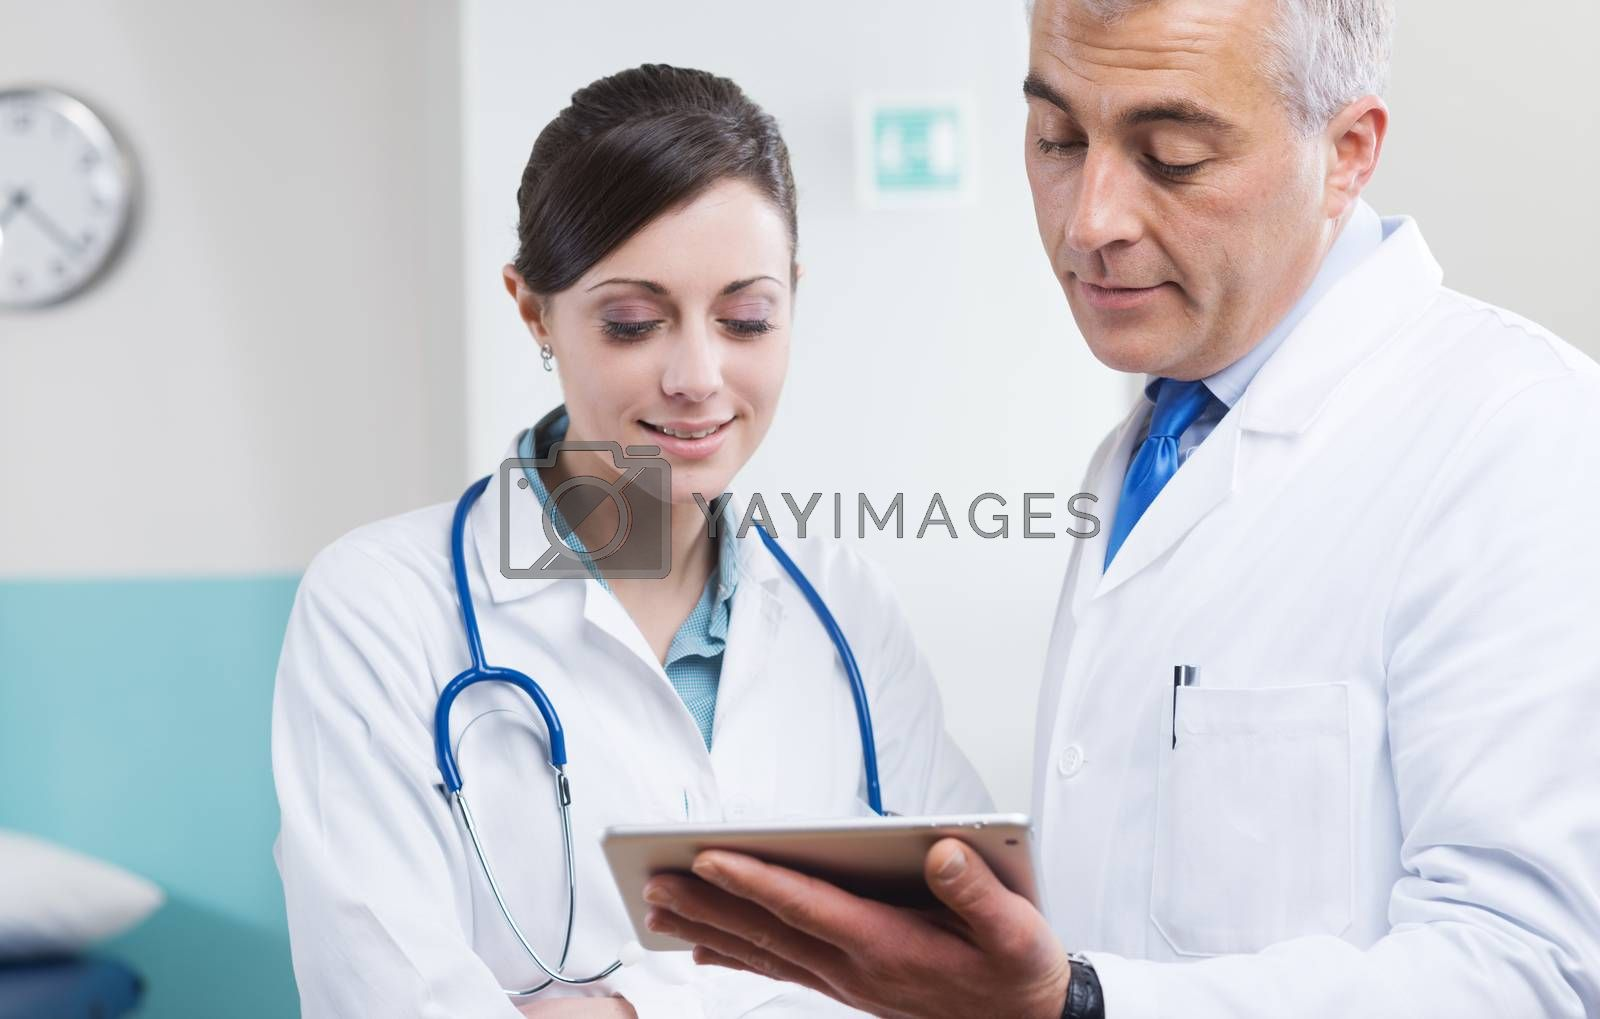 Doctors at hospital working together with a digital tablet.